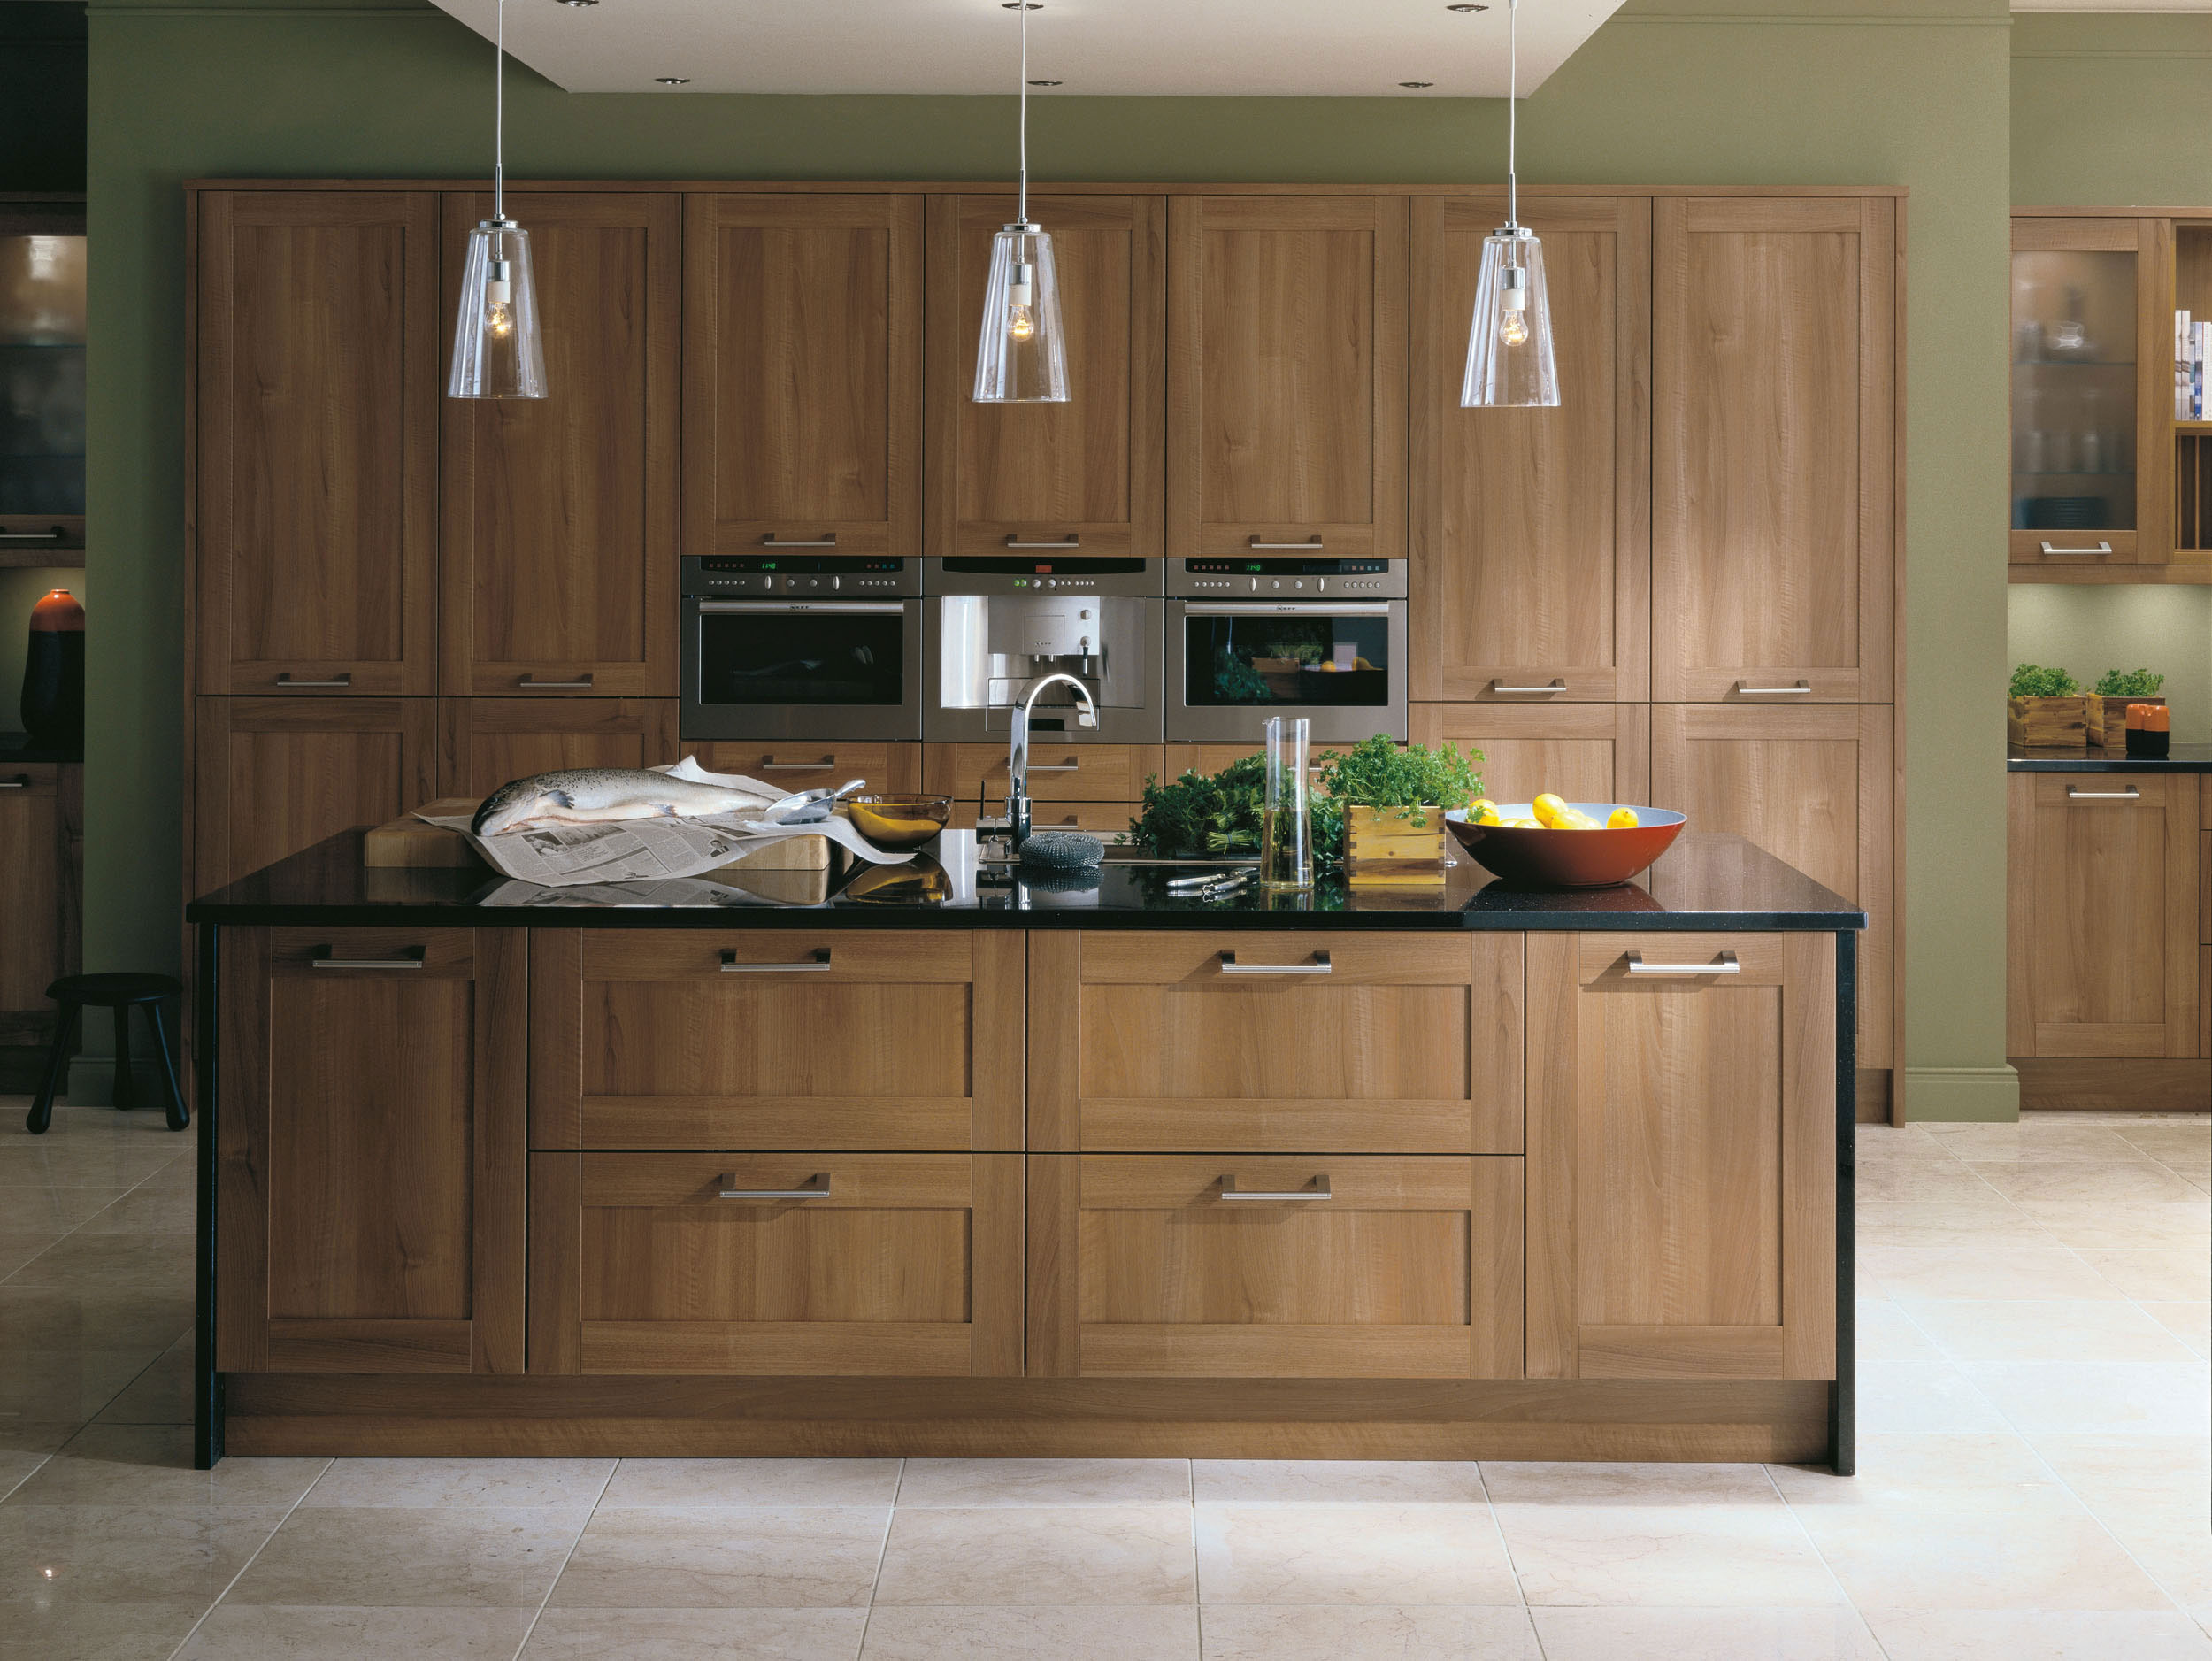 Scope walnut from eaton kitchen designs wolverhampton for Walnut kitchen designs